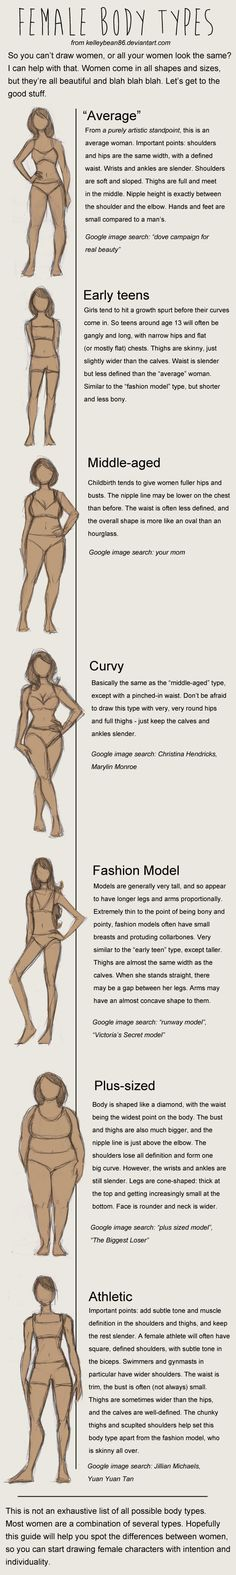 Draw Female Body Types by ~kelleybean86 on deviantART                                                                                                                                                      More